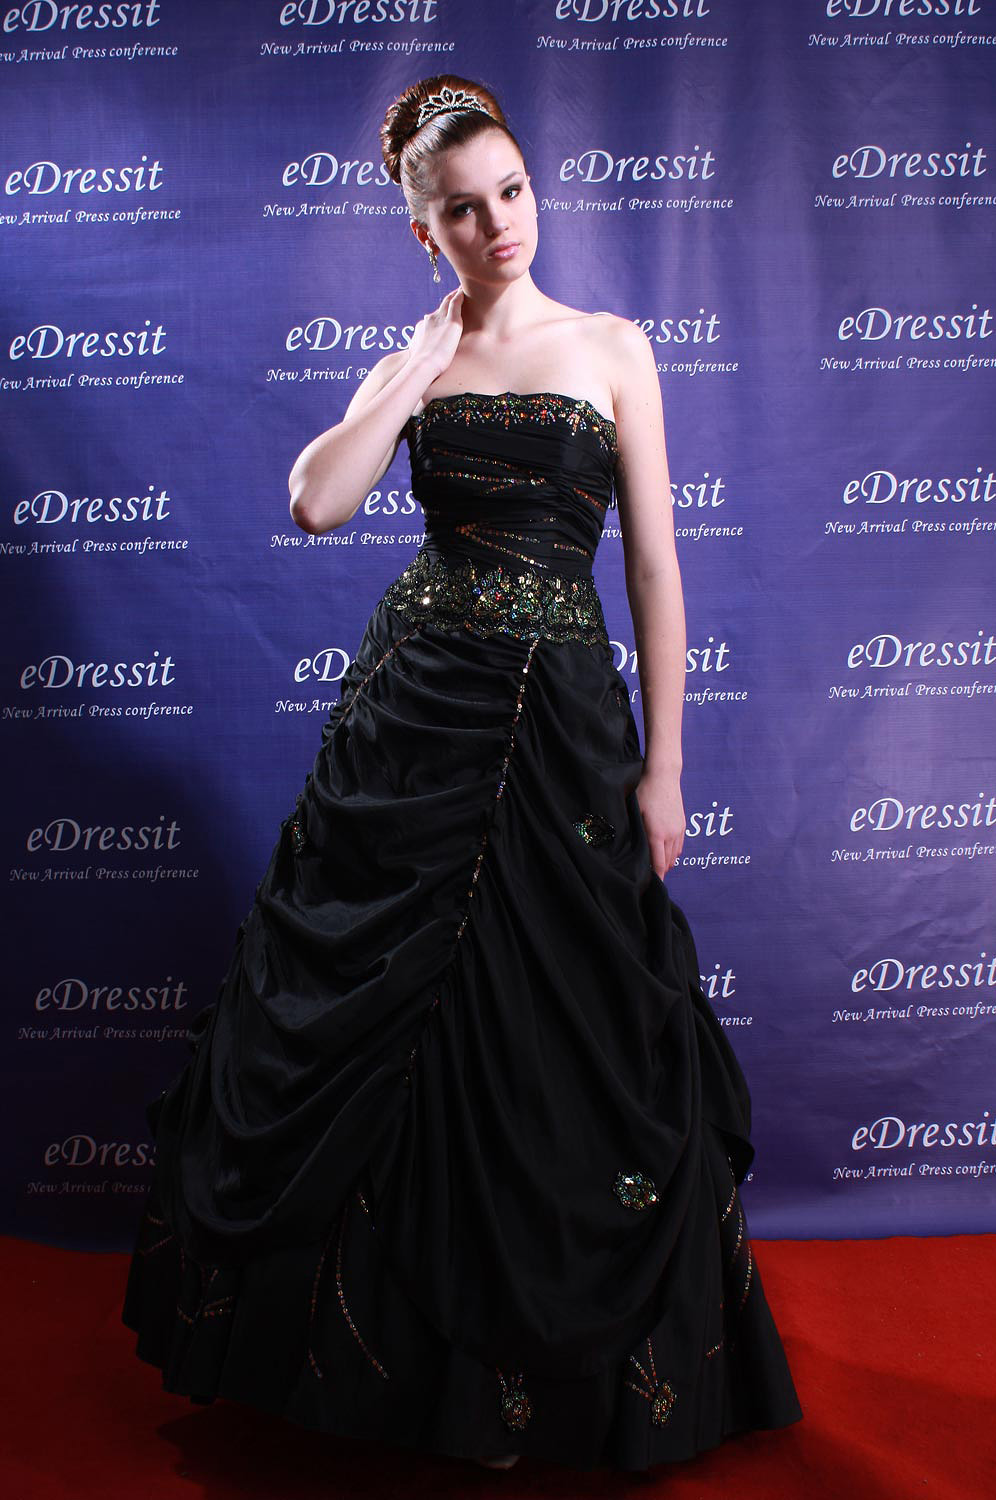 eDressit Black Luxurious Evening Dress (01772100)